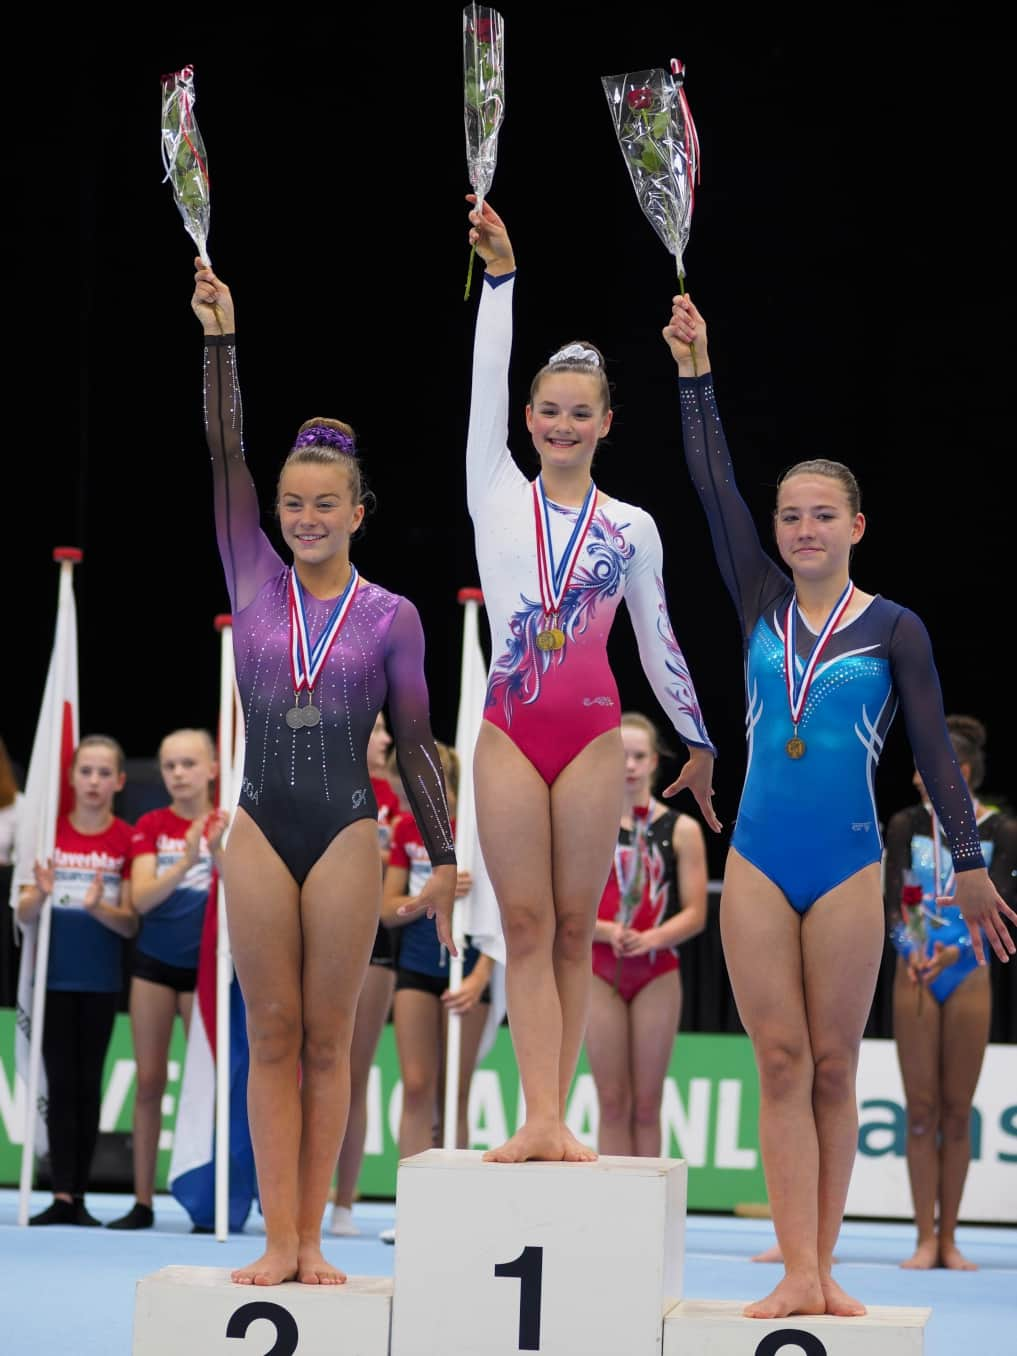 ESB Secondary Student Captures Dutch Gymnastics Championship